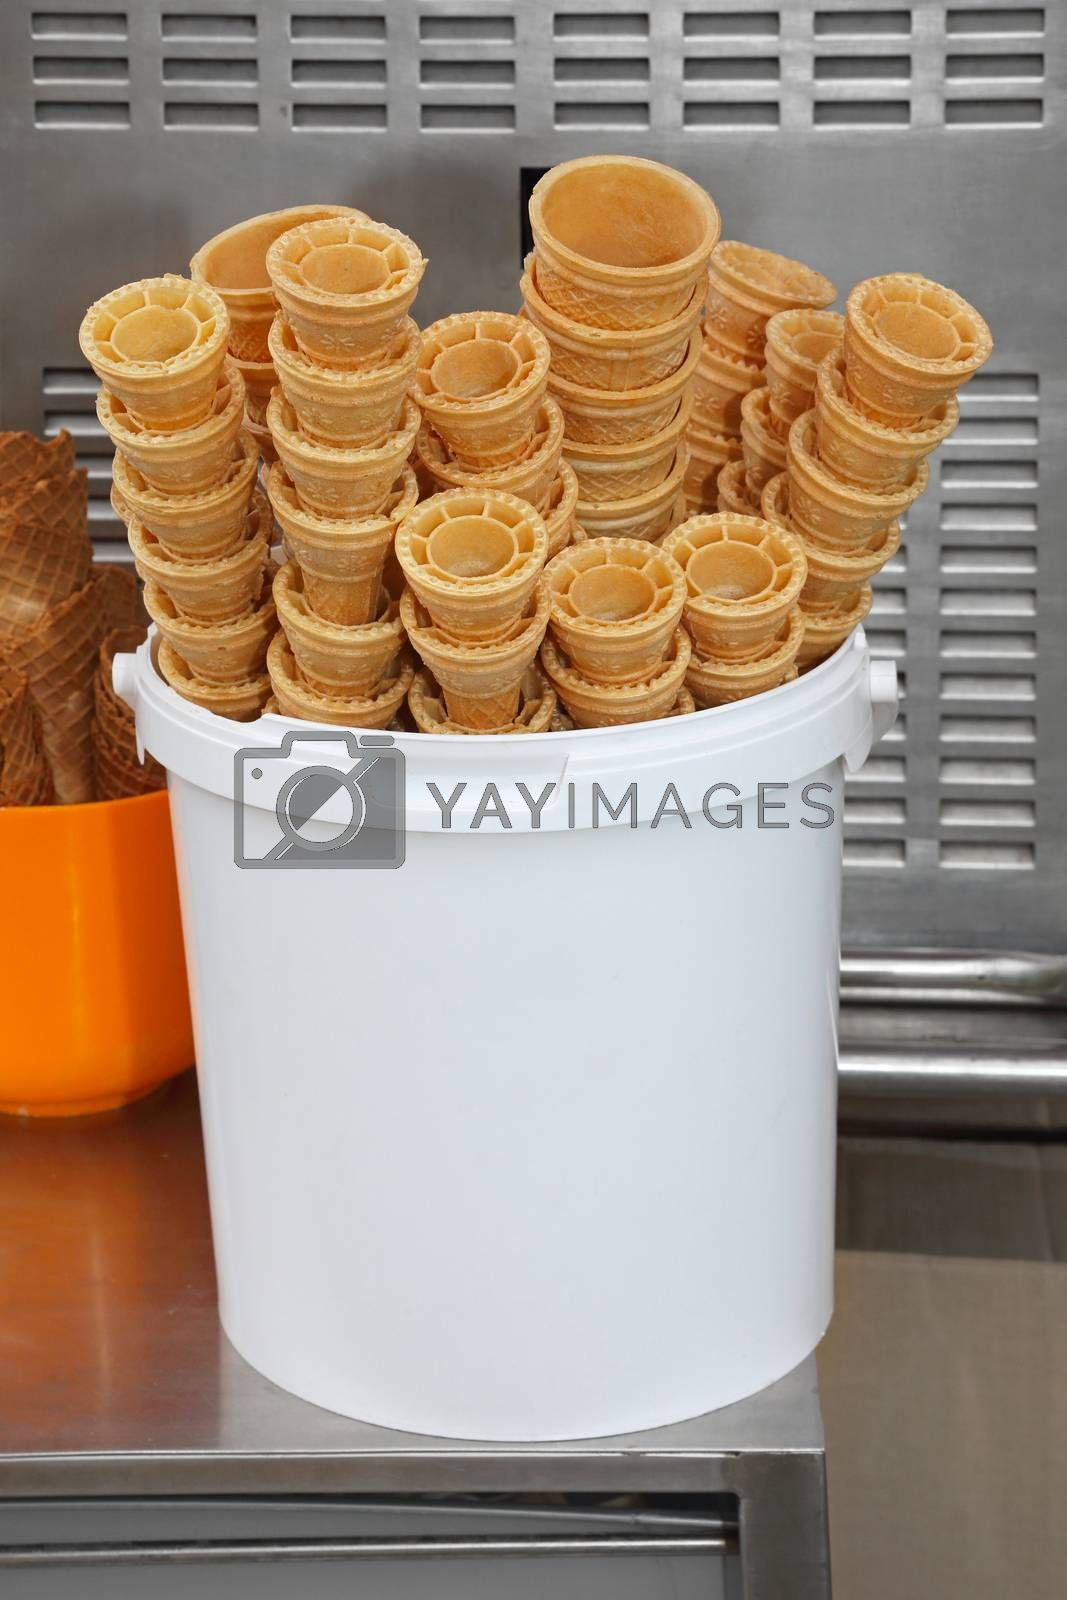 Royalty free image of Ice cream cones by Baloncici